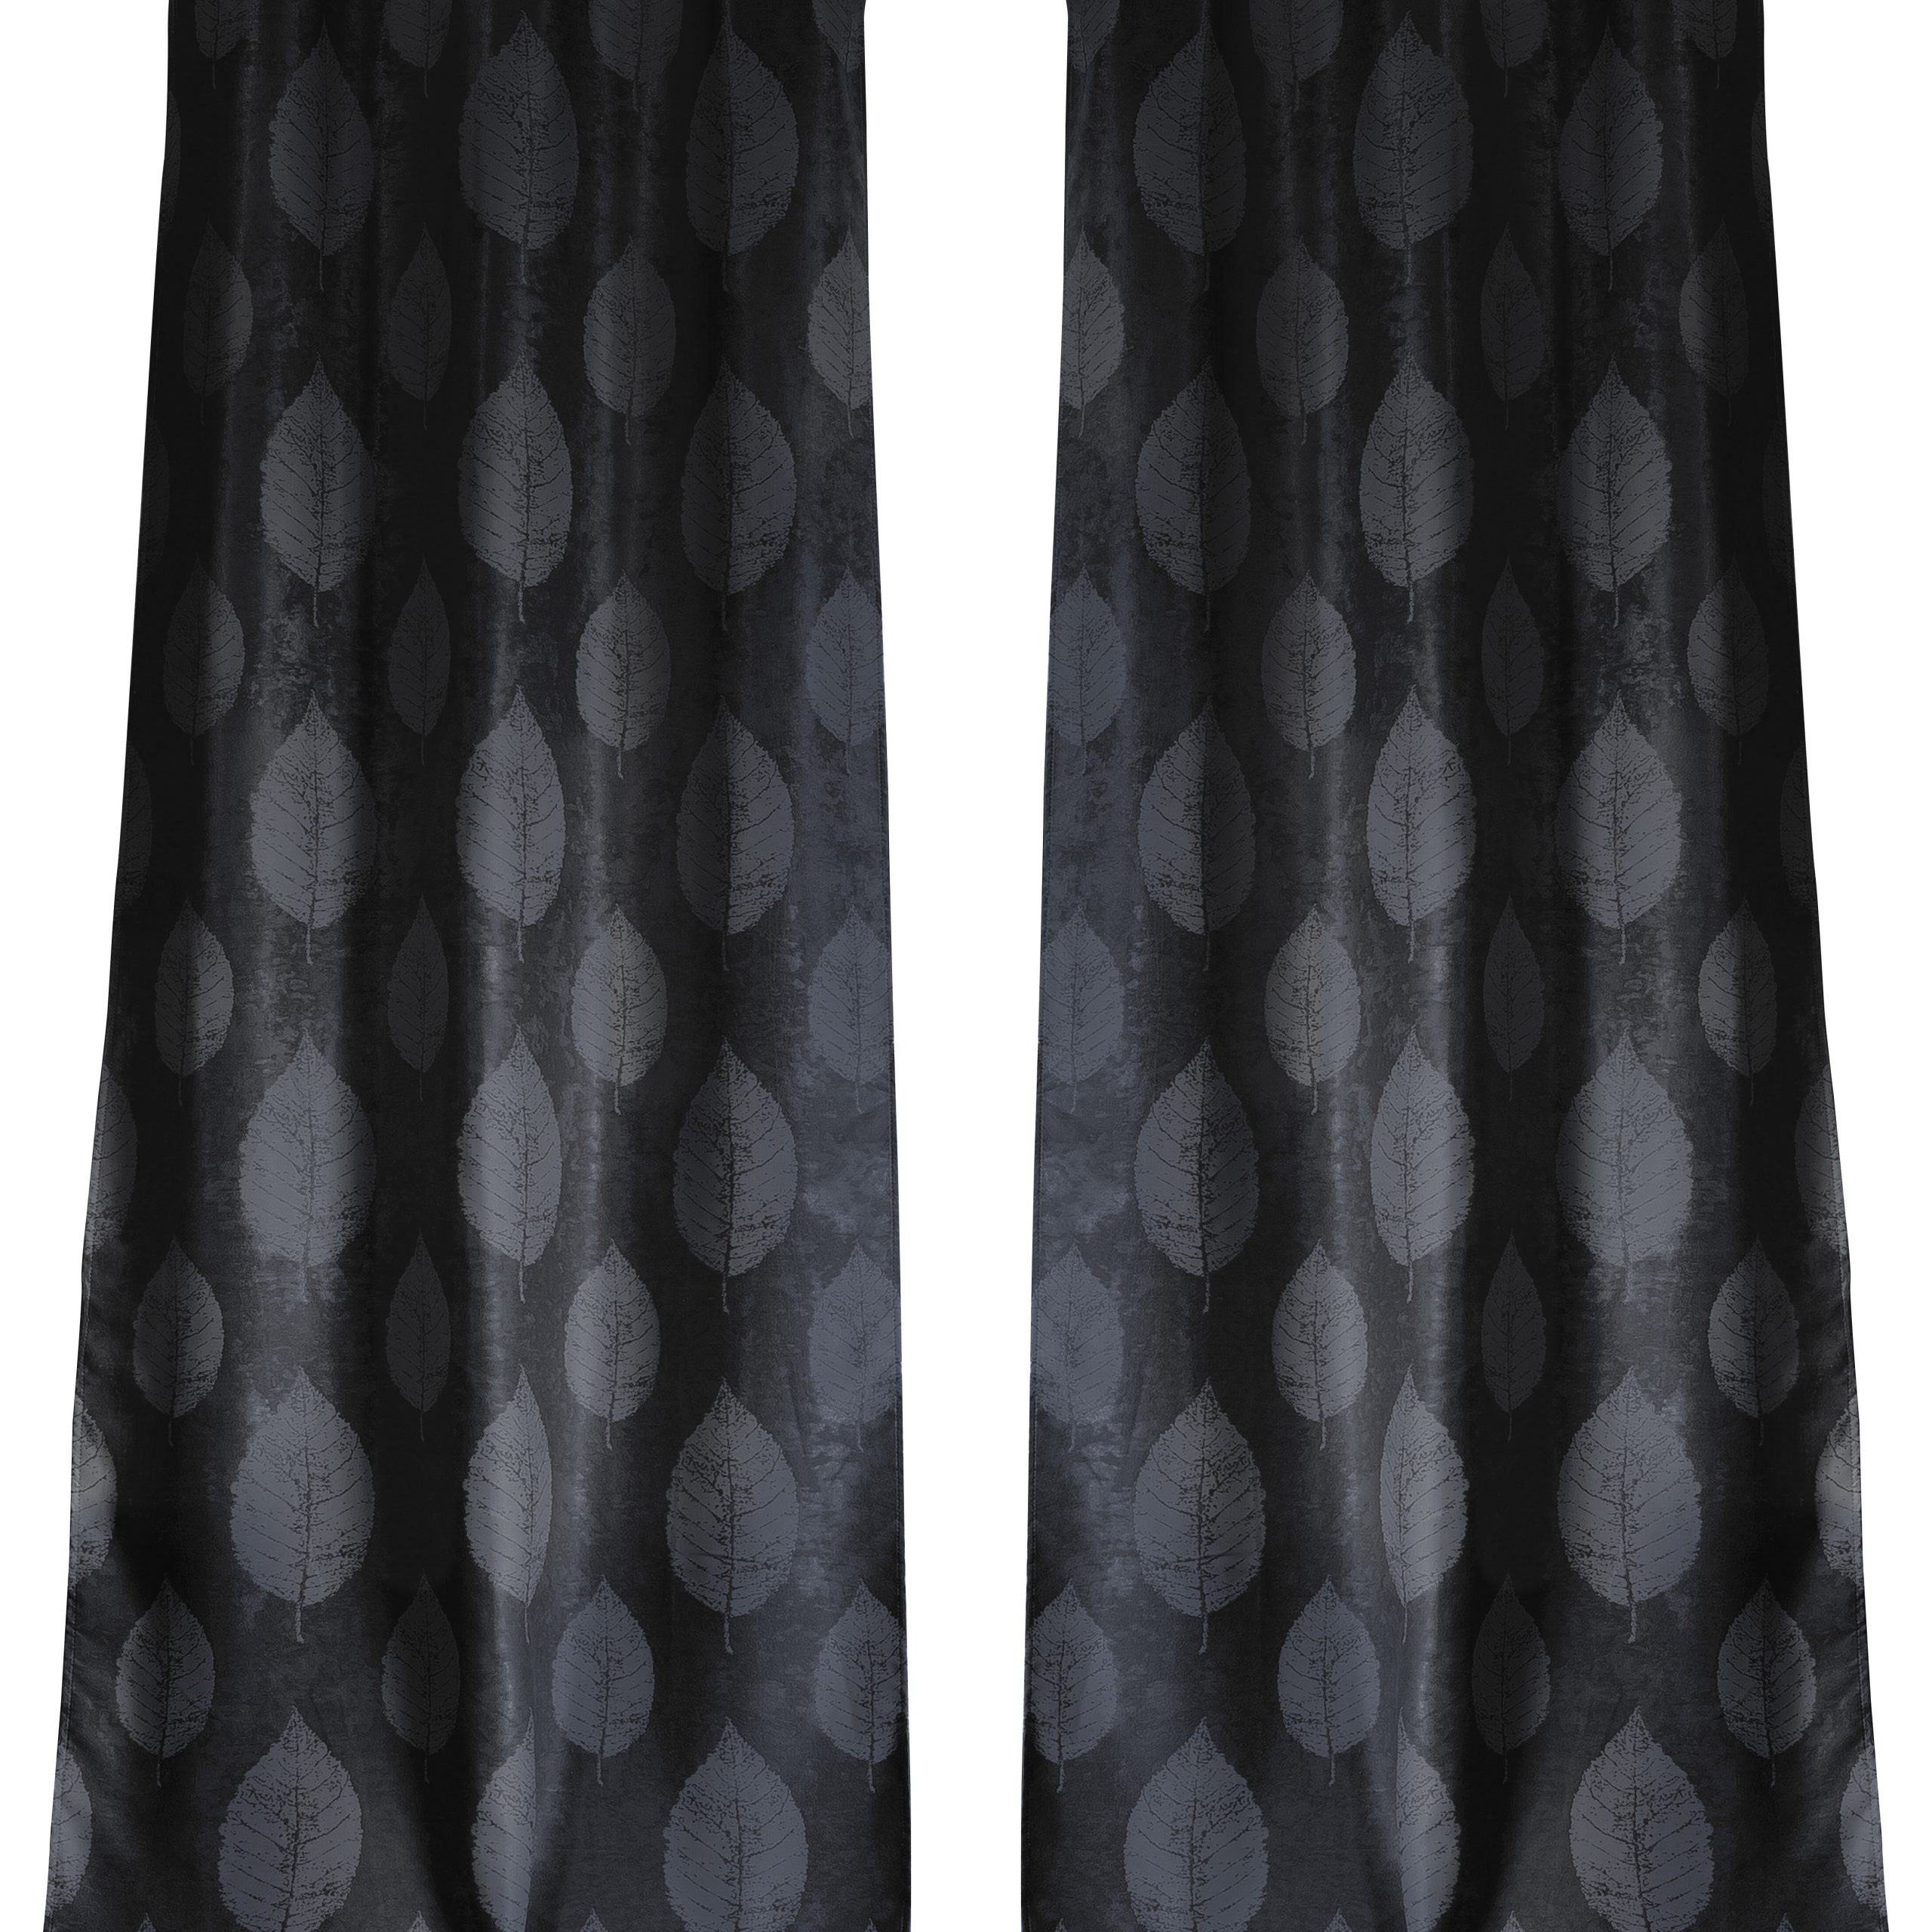 Iselin Sheila Leaf Floral/flower Blackout Grommet Curtain Panels In Well Known Overseas Leaf Swirl Embroidered Curtain Panel Pairs (View 12 of 21)